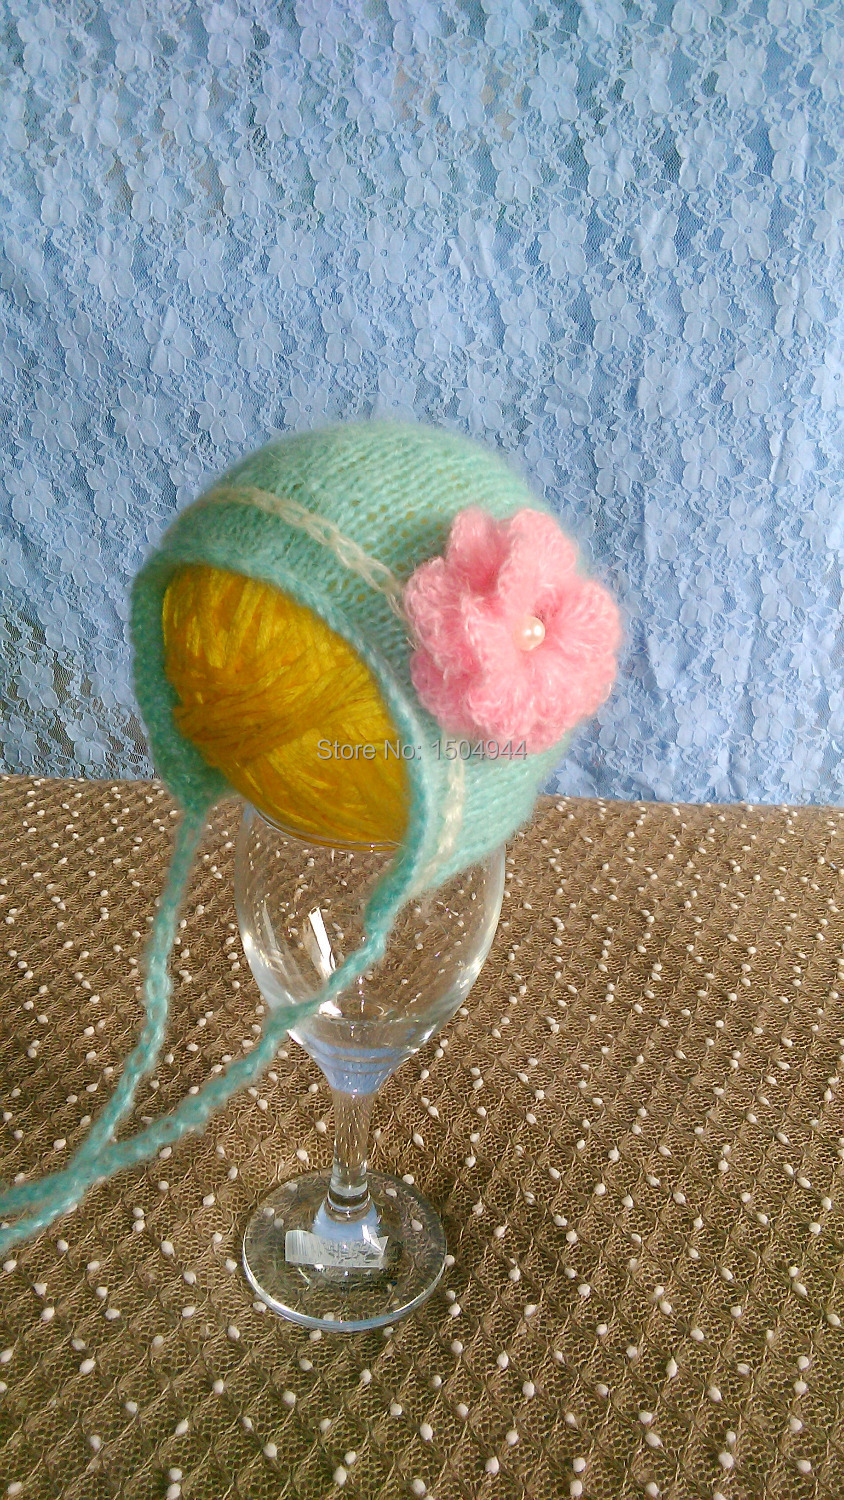 MODEL# SYX-150407-1, hand by hand woven mohair and big flower hat baby shower gift, baby photography props(China (Mainland))